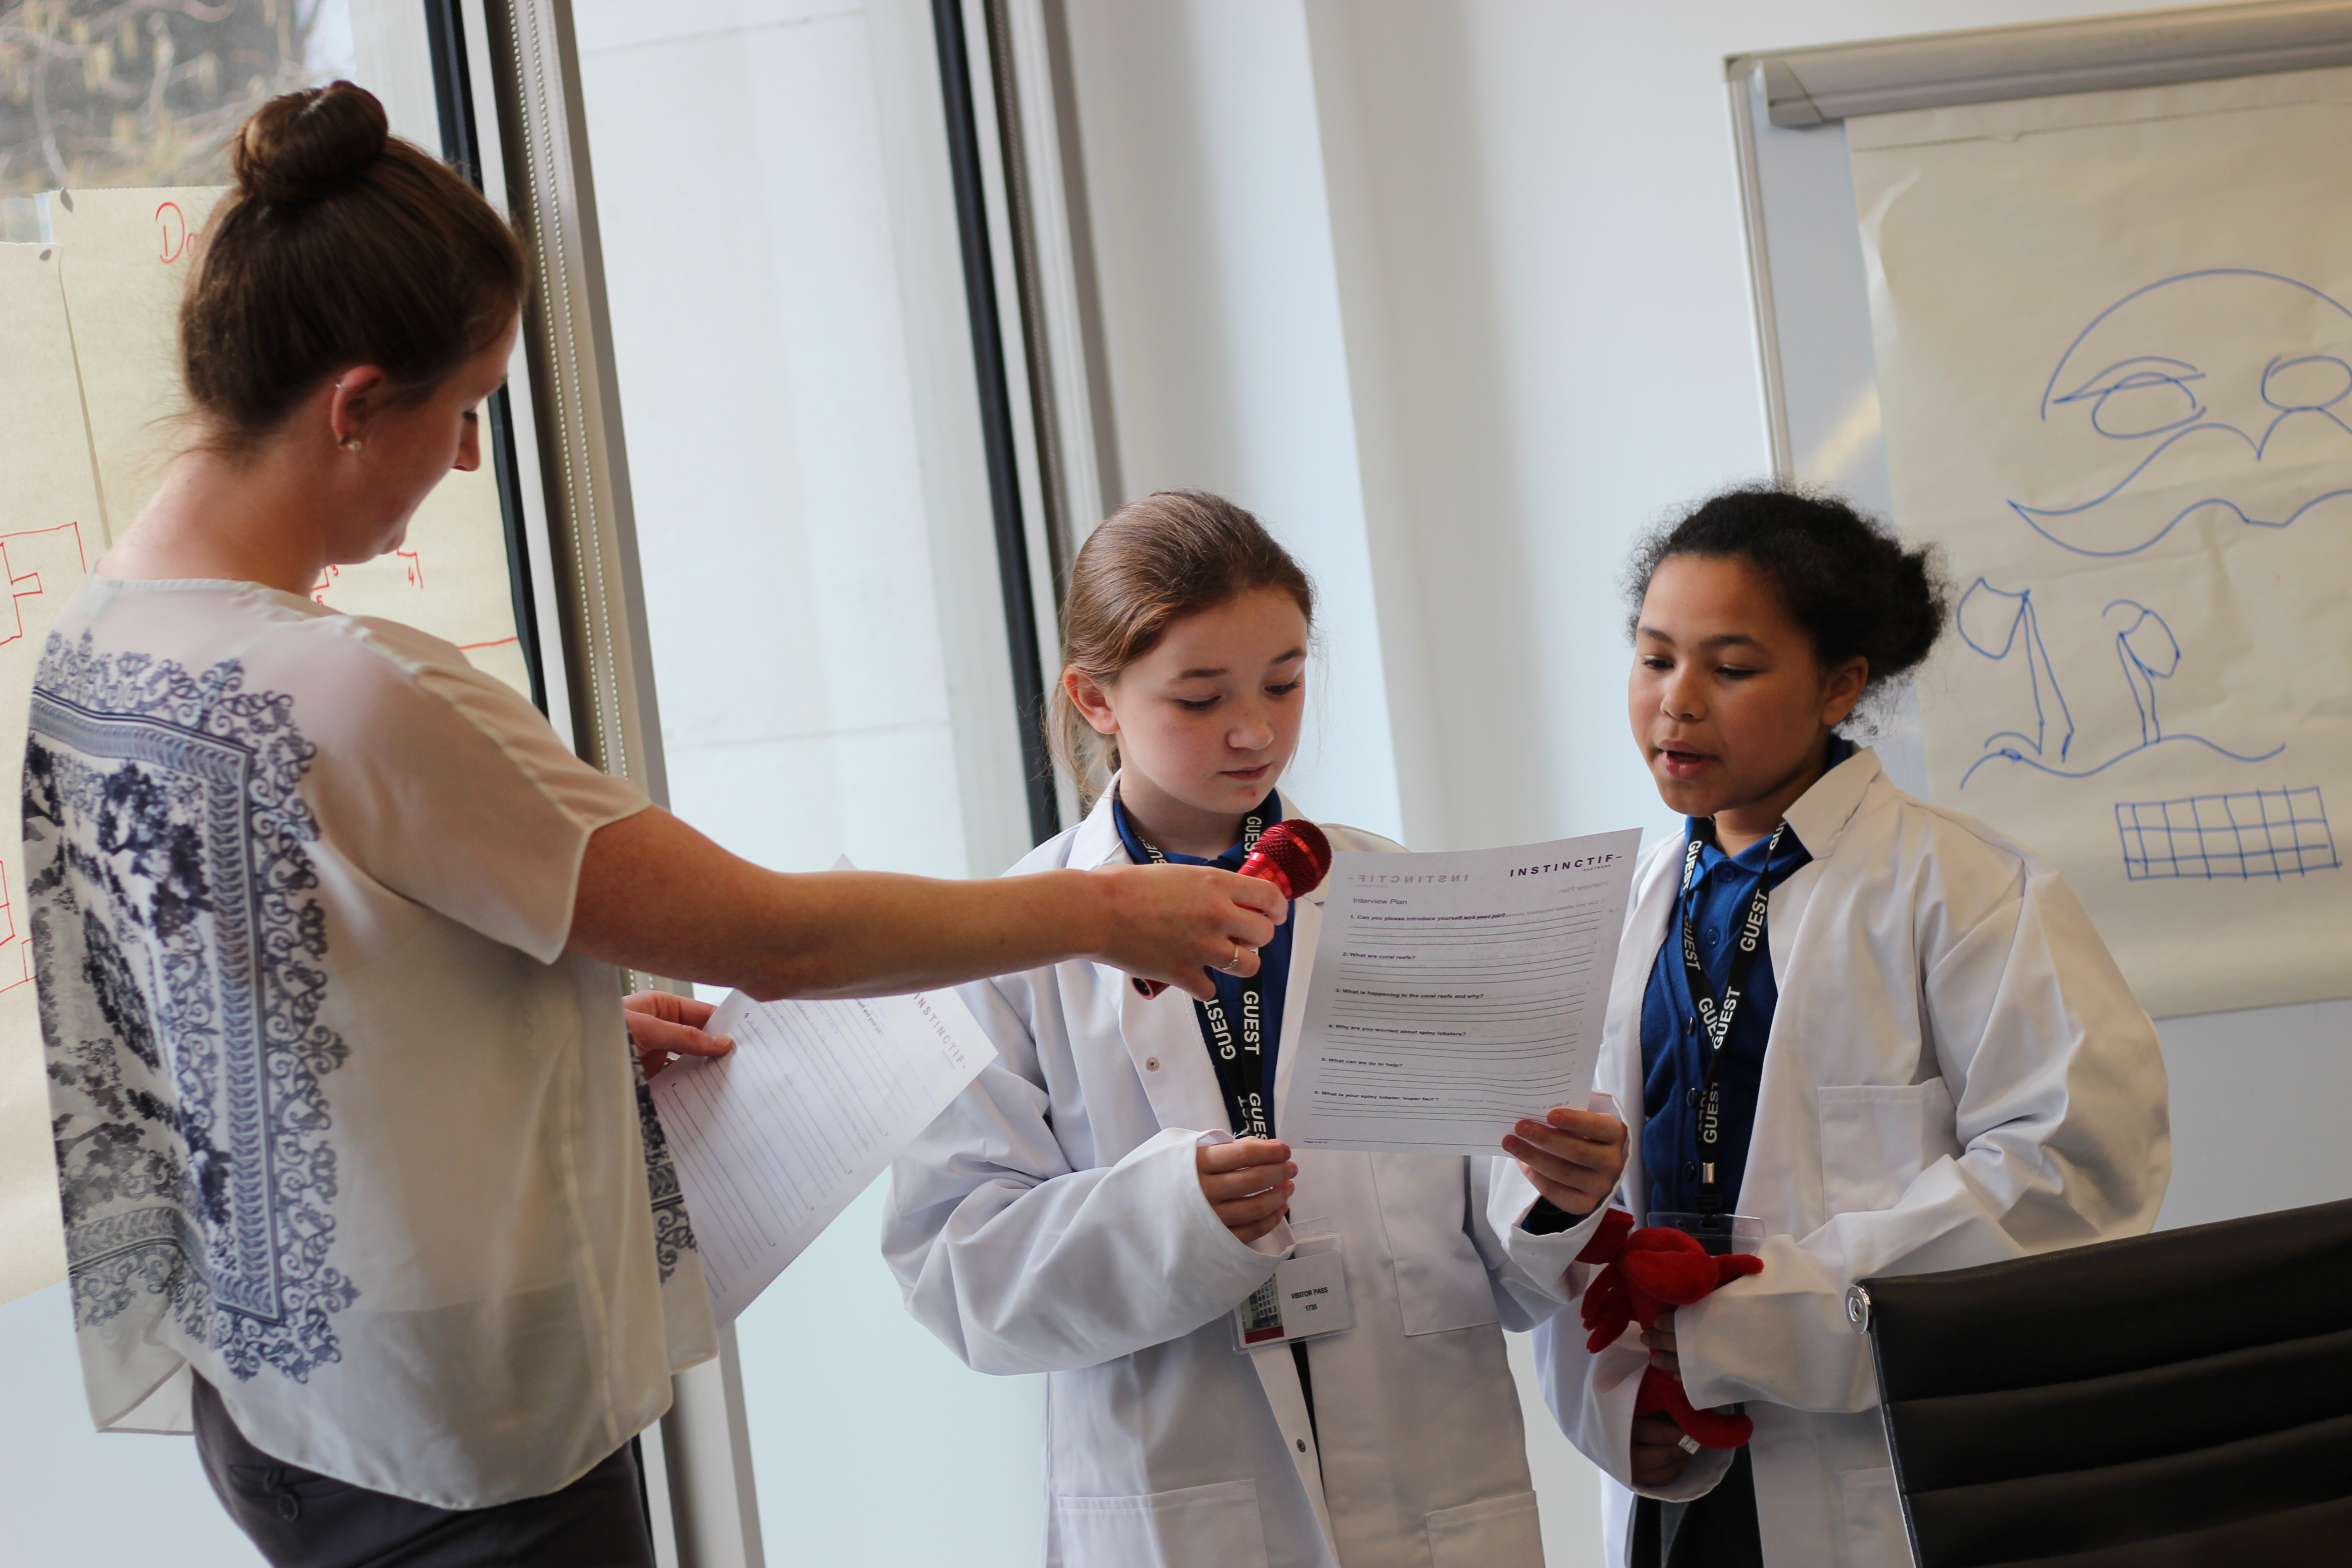 An Instinctif employee pretends to interview two girls dressed as science experts in lab coats